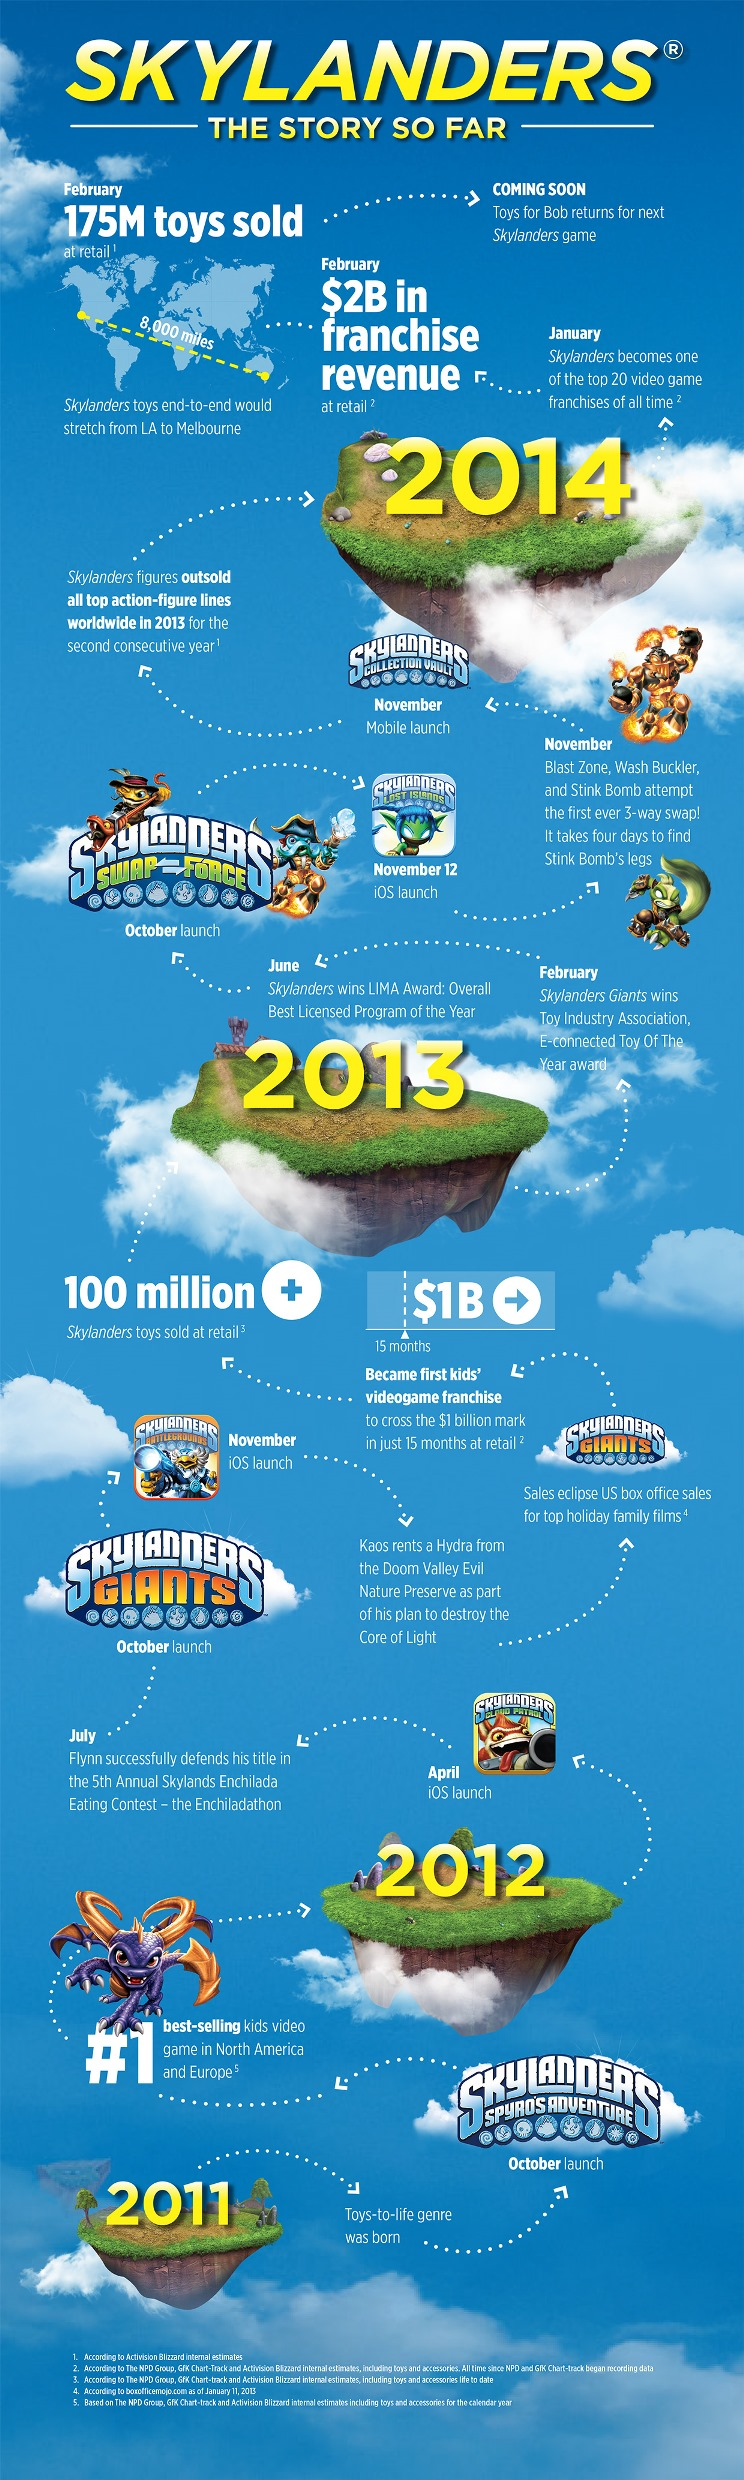 Skylanders_Franchise_Infographic_Final_MedRes